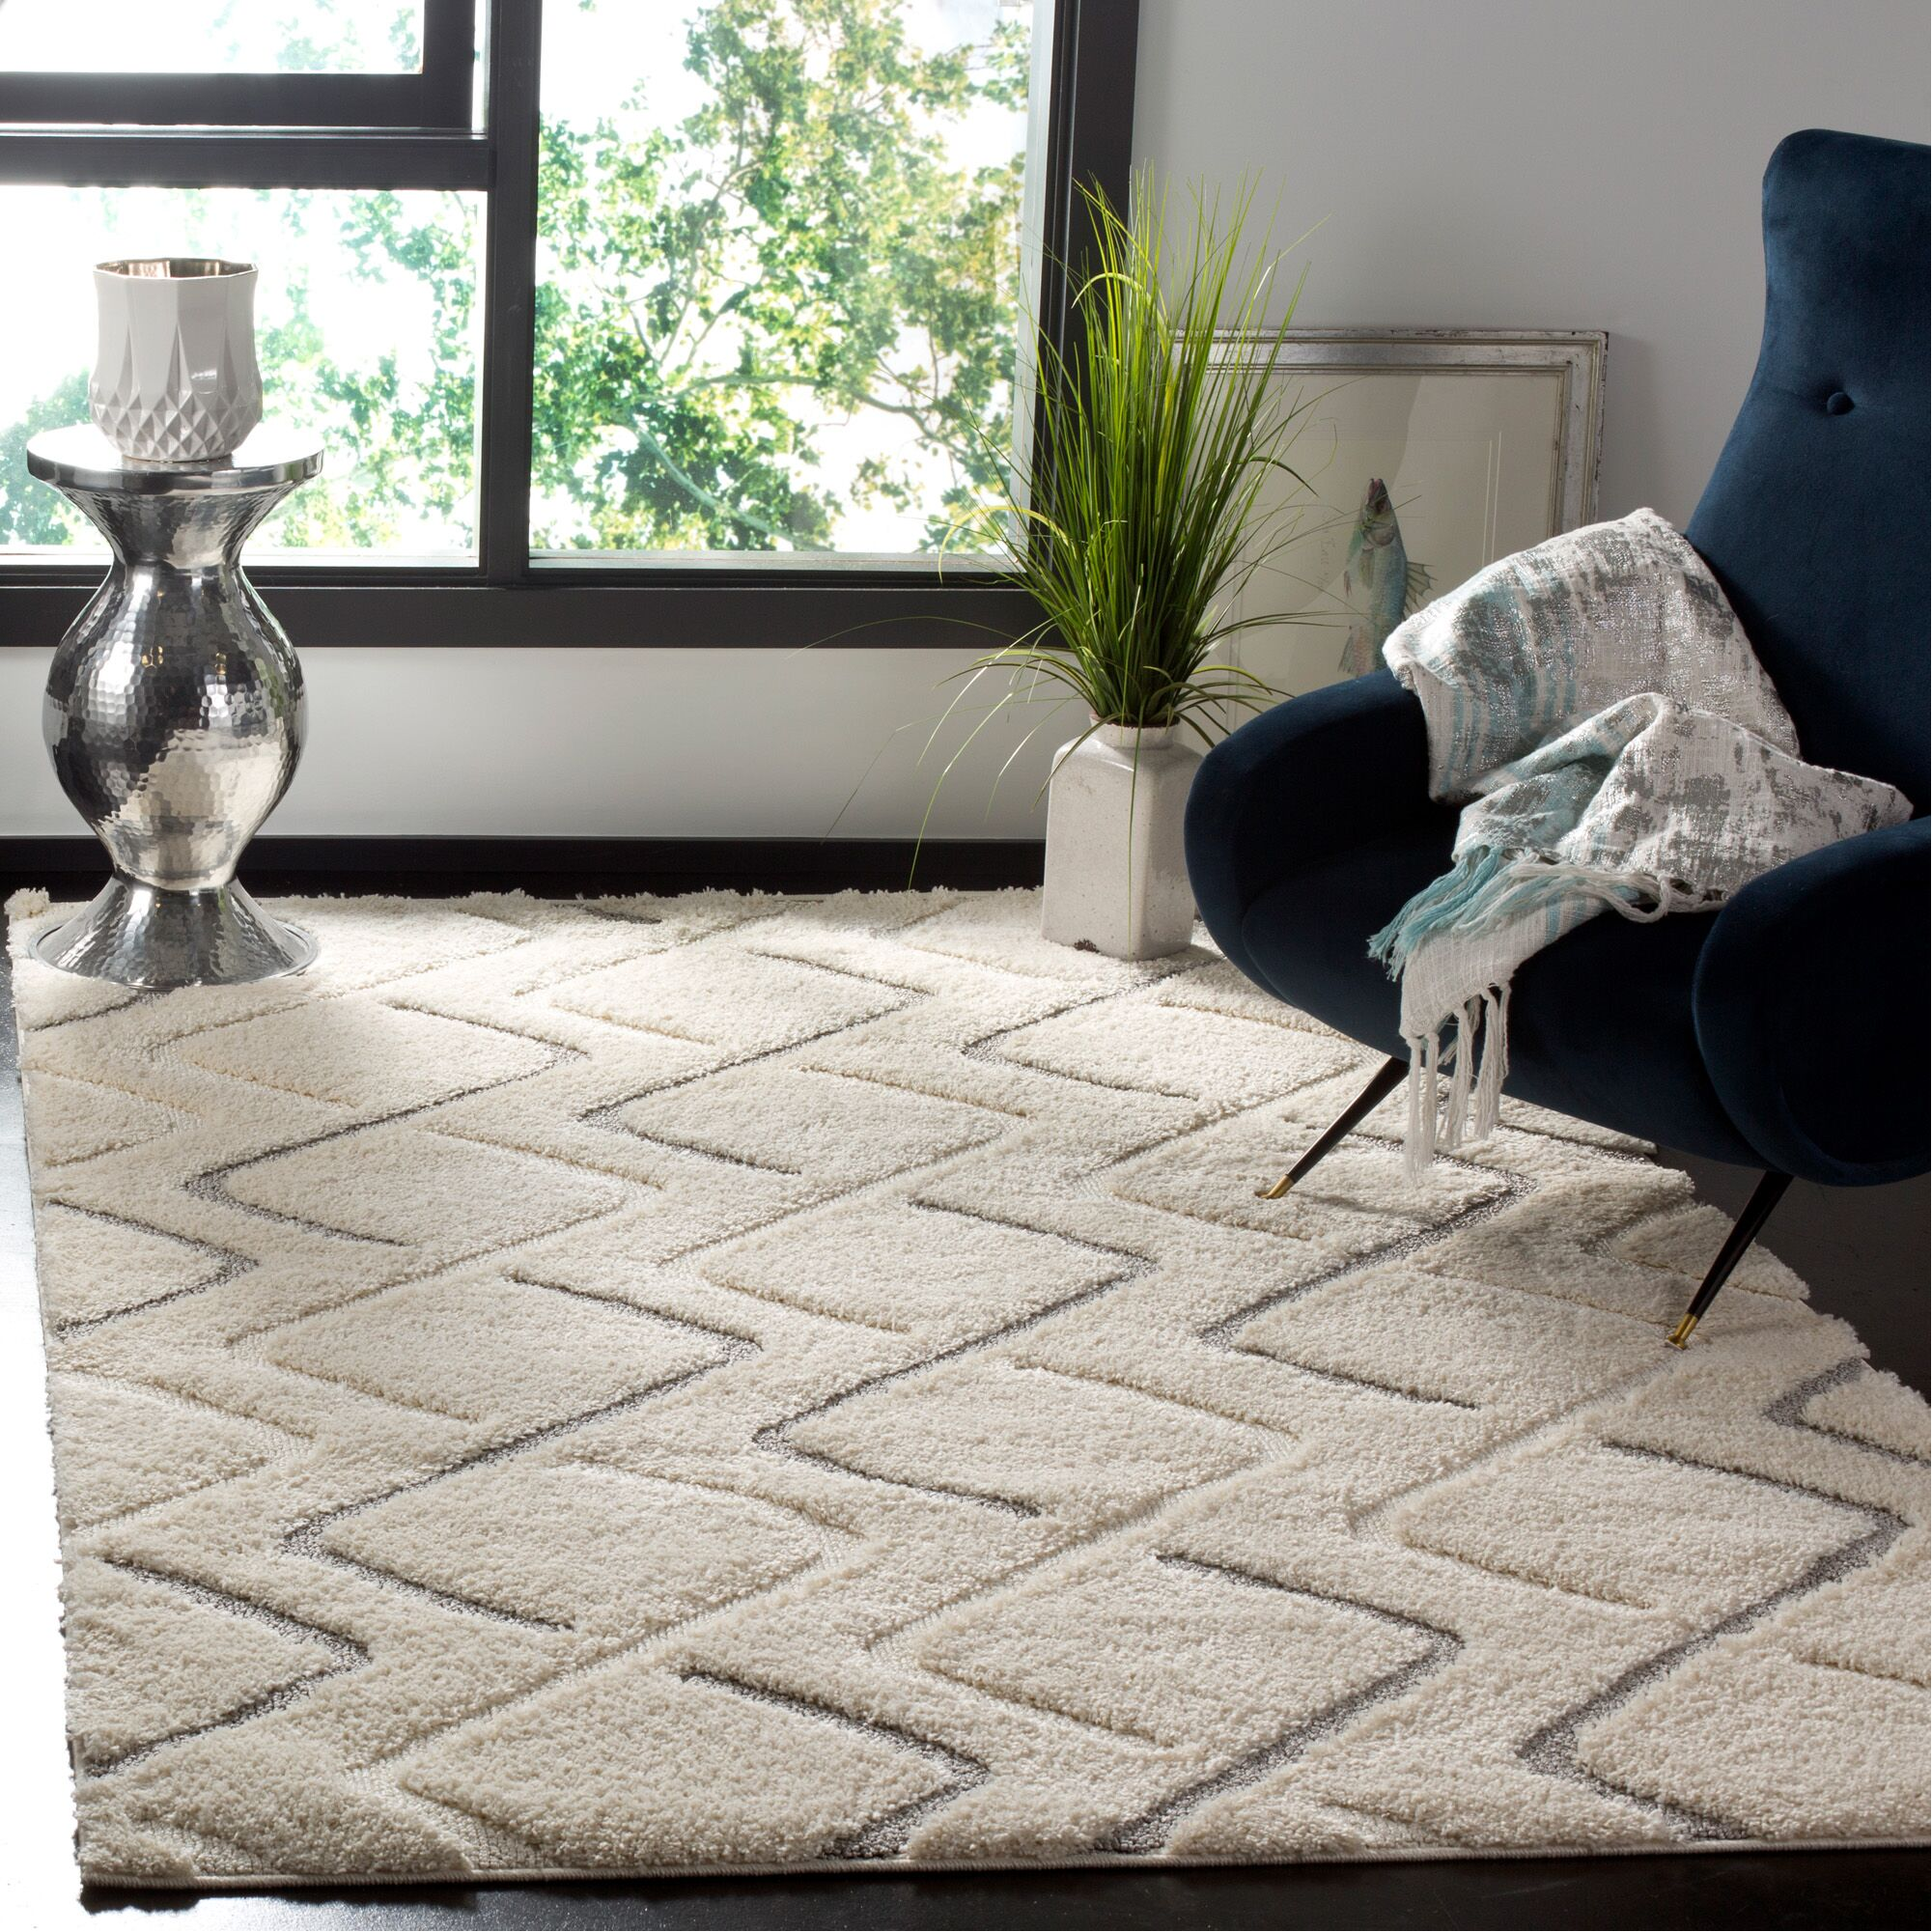 Napfle Geometric Beige Area Rug Rug Size: Rectangle 5'1